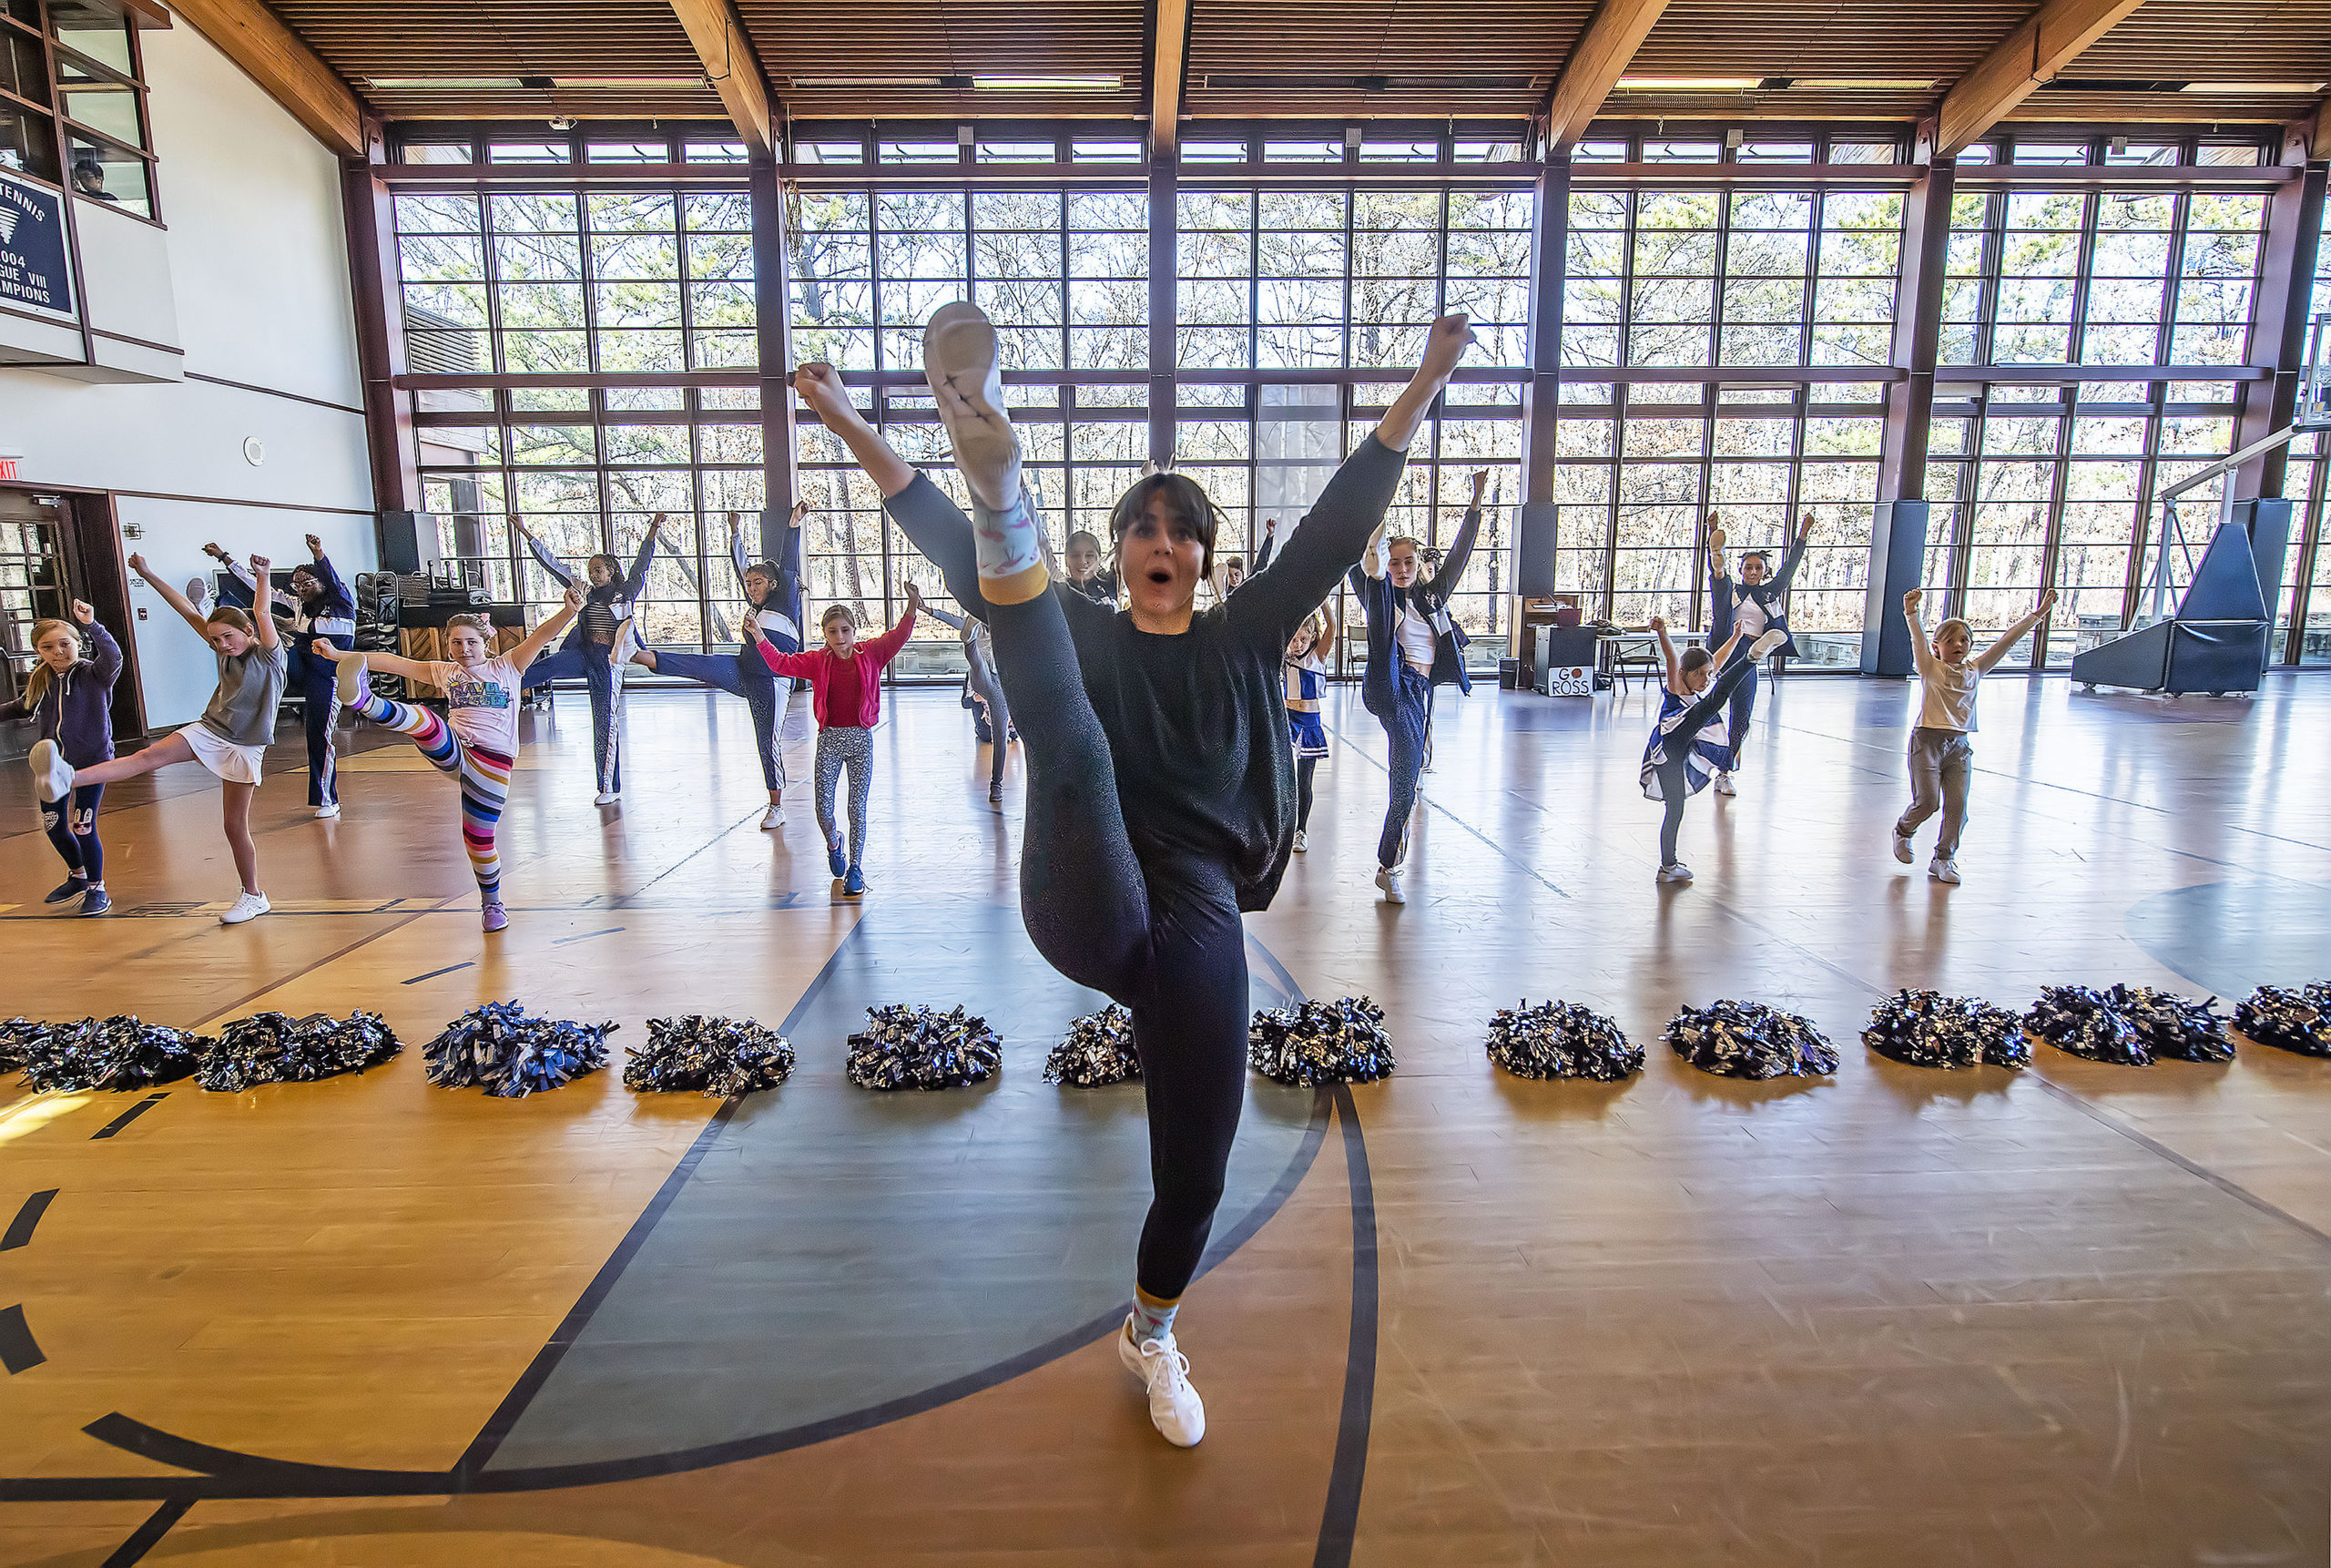 Ross School Cheerleading Coach Andrea Chesley leads a class in some beginner cheer moves during a Cheerleading Workshop that was held in the gymnasium of the Ross School on Saturday.   MICHAEL HELLER